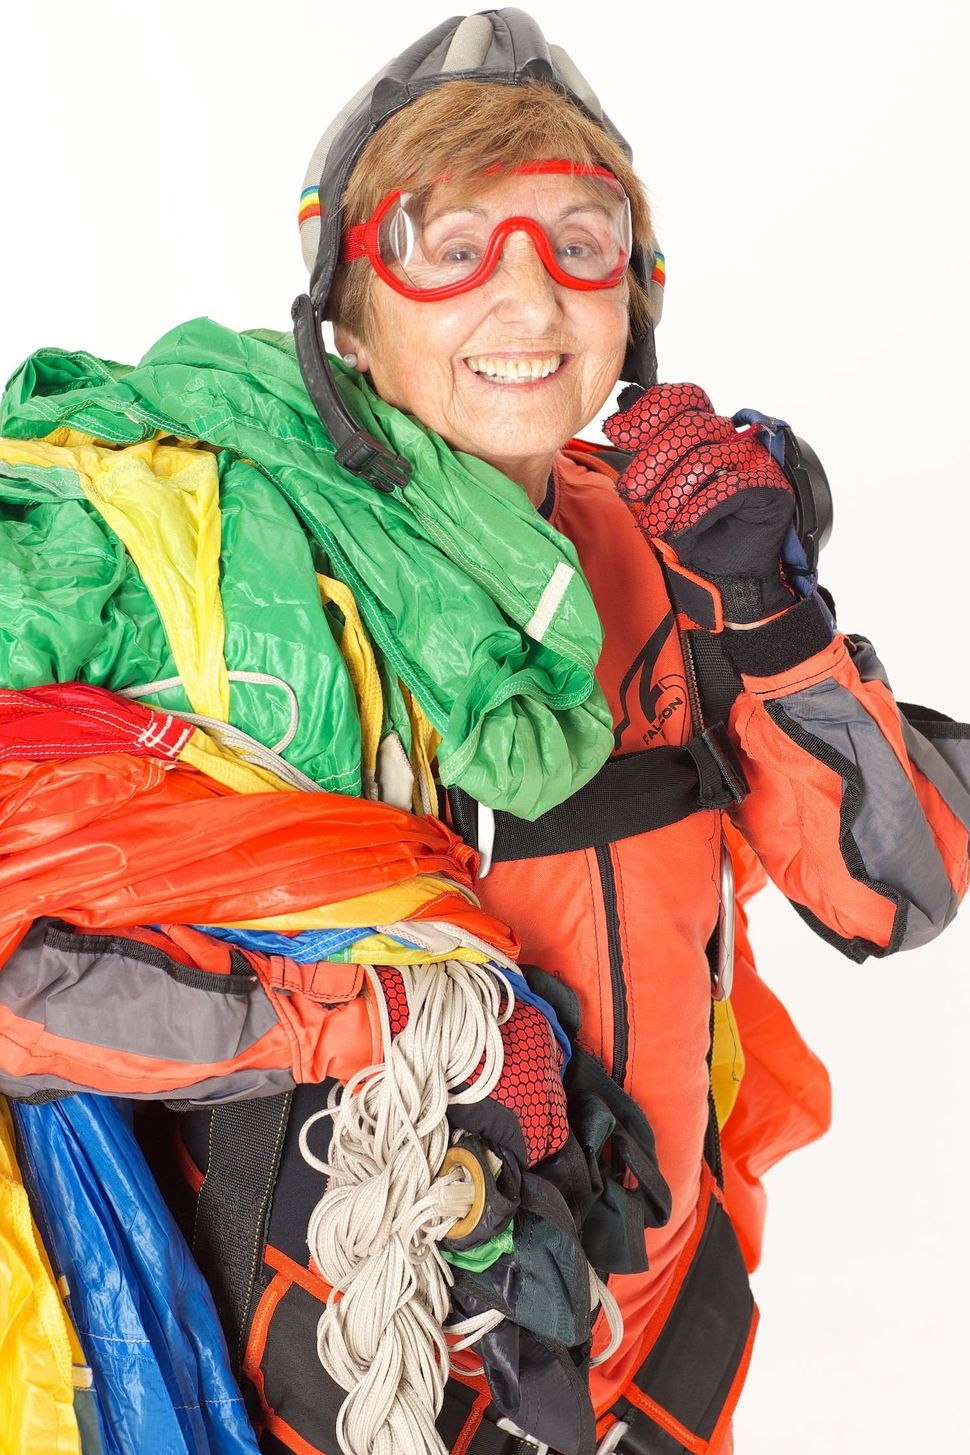 Montserrat Mecho is happiest when she jumps out of an airplane with a parachute strapped to her back. Over the last few years